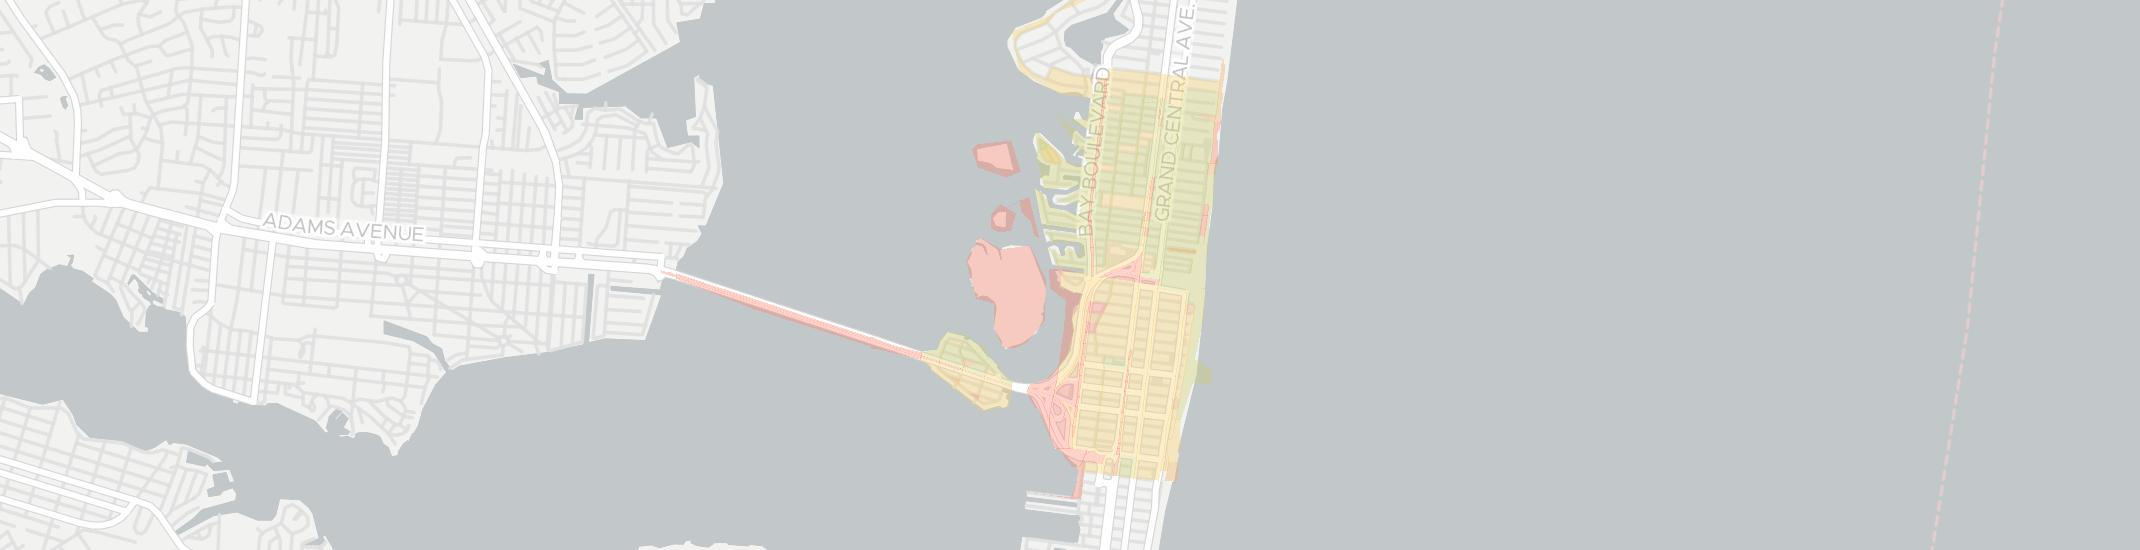 Seaside Heights Internet Competition Map. Click for interactive map.